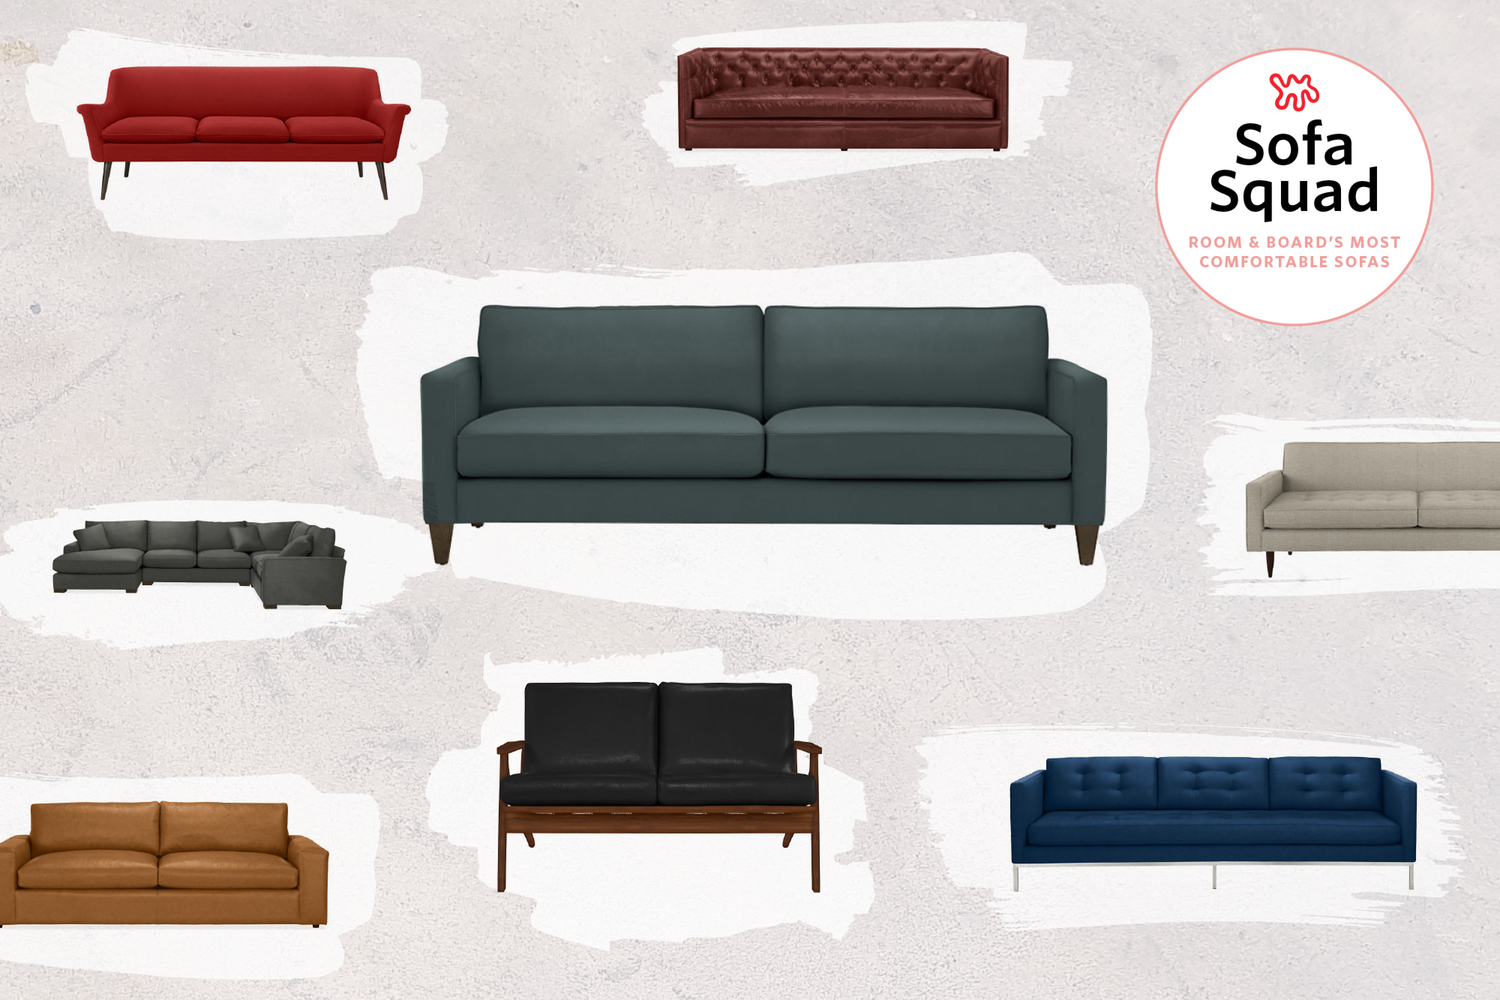 The Most Comfortable Sofas At Room